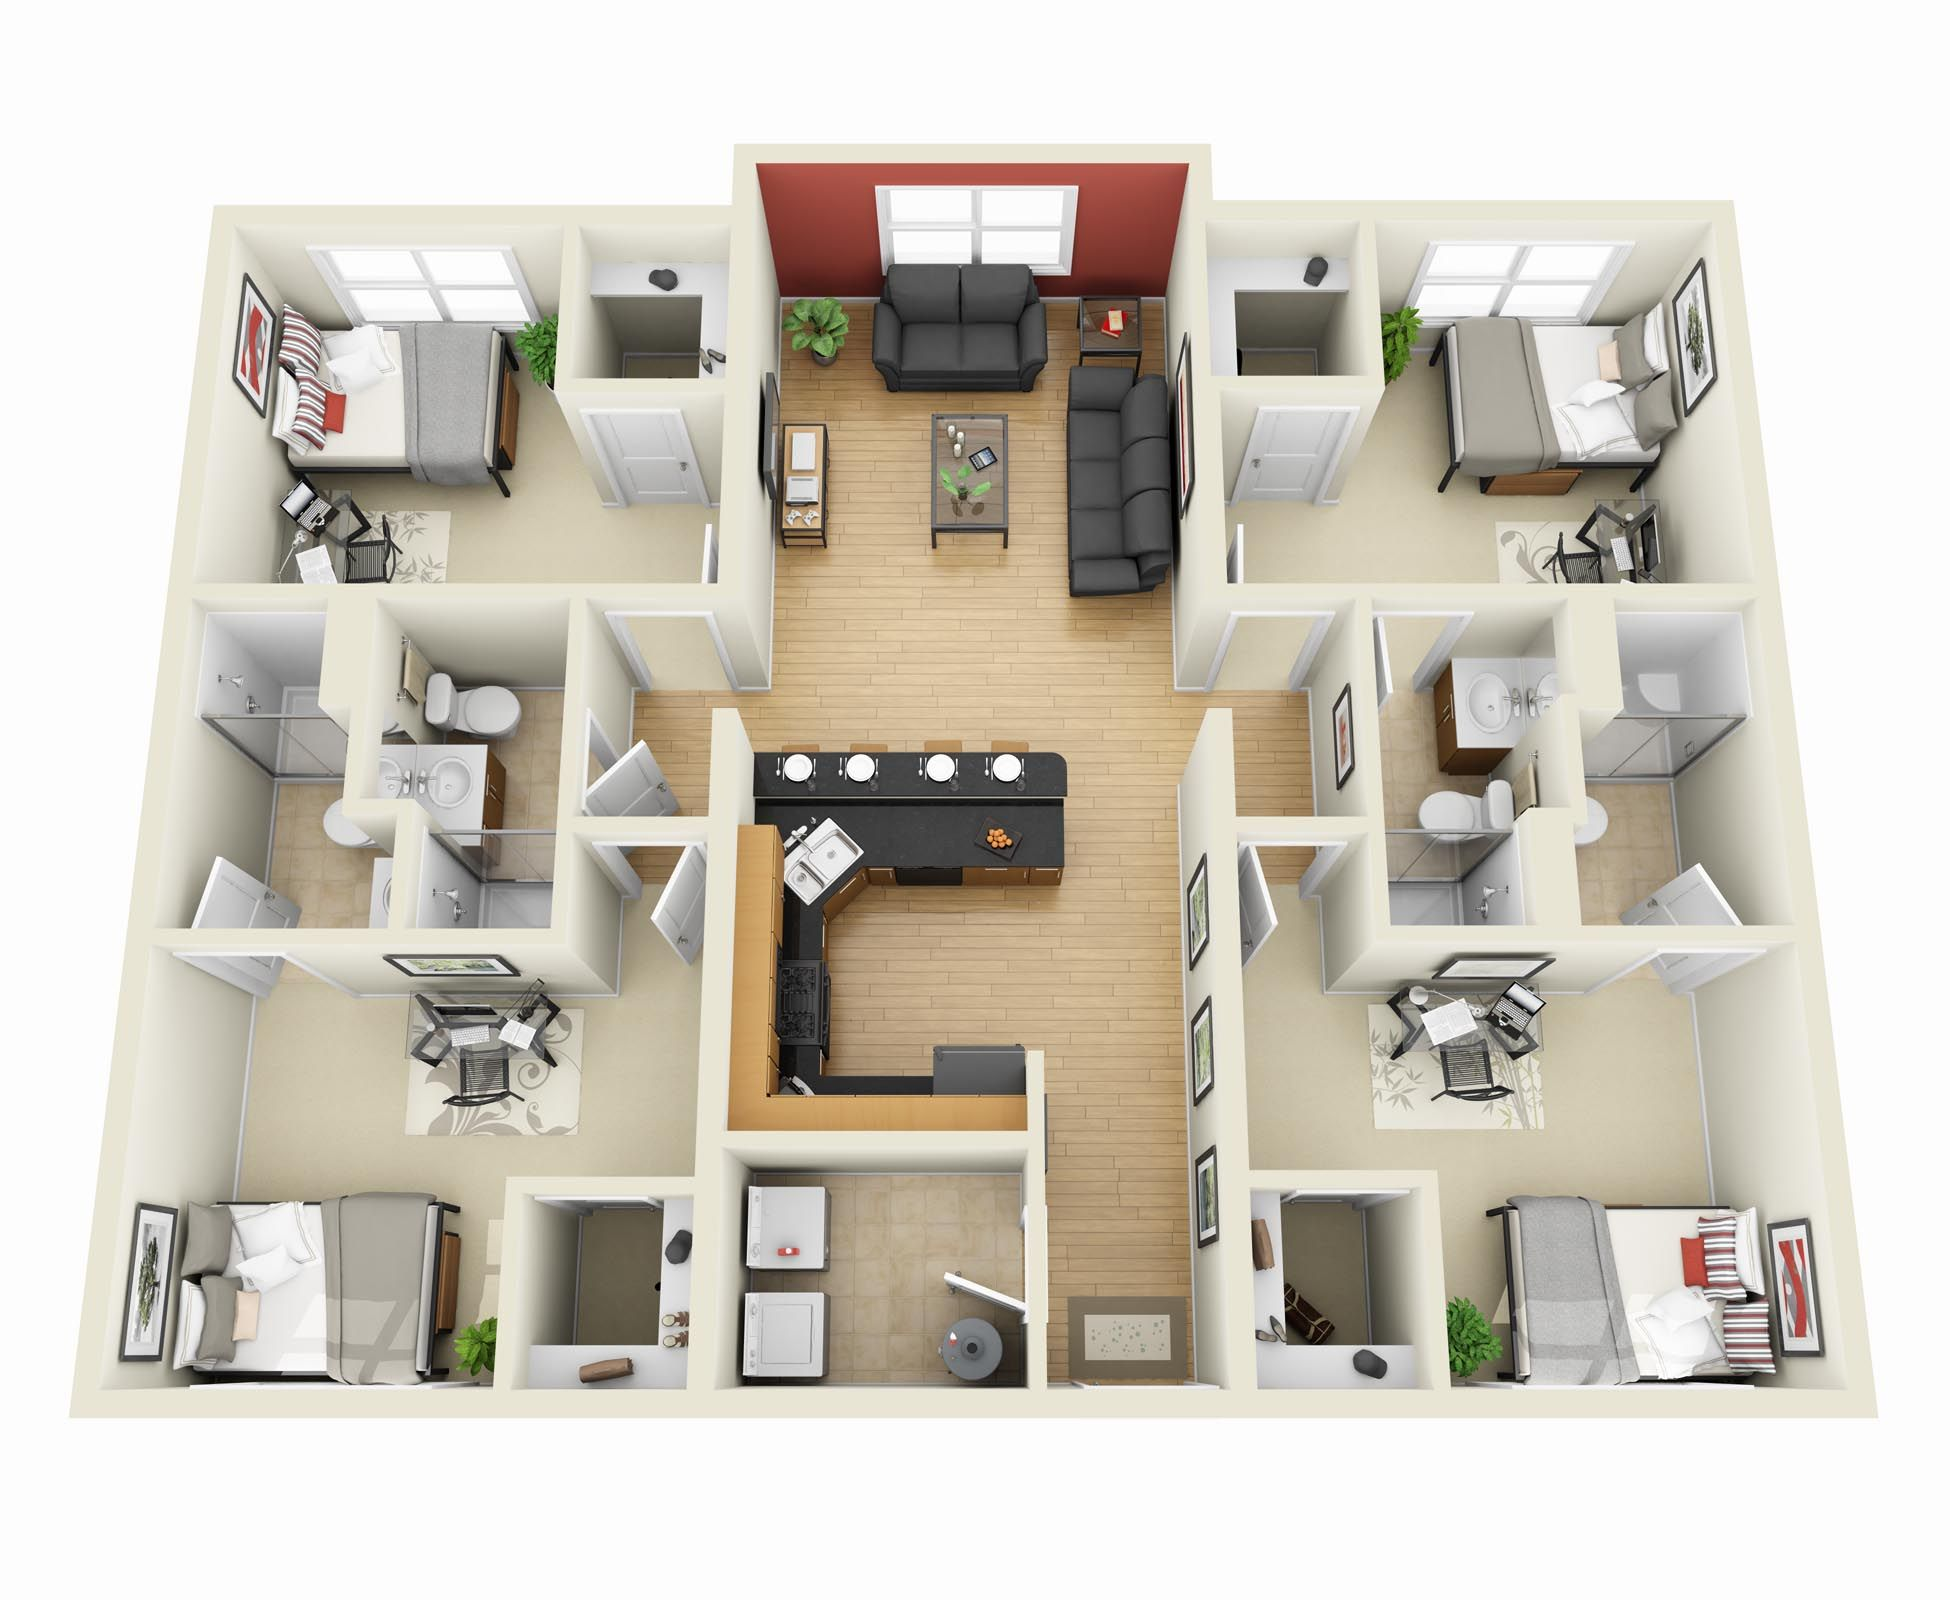 Four ucud Bedroom ApartmentHouse Plans Pinterest Bedroom